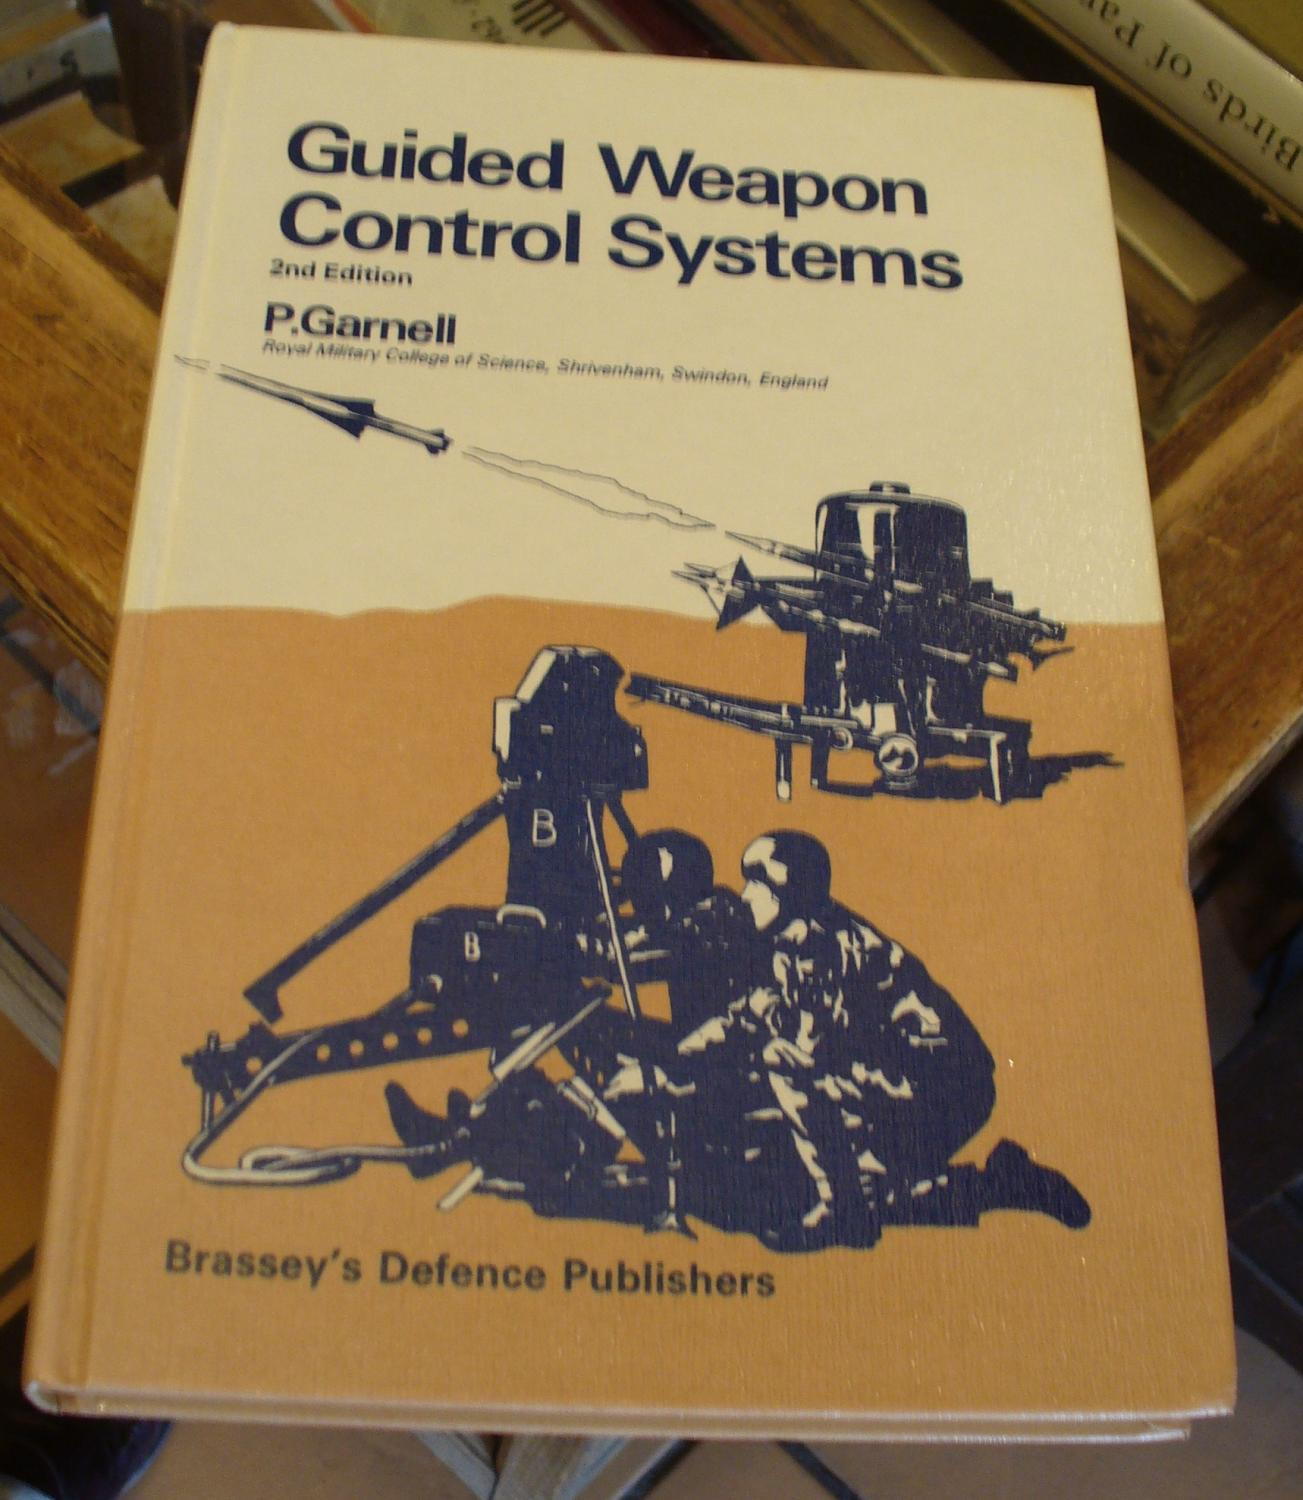 guided weapon control systems 2nd edition by garnell p brassey s rh abebooks com Gun Fire Control System guided weapon control systems garnell